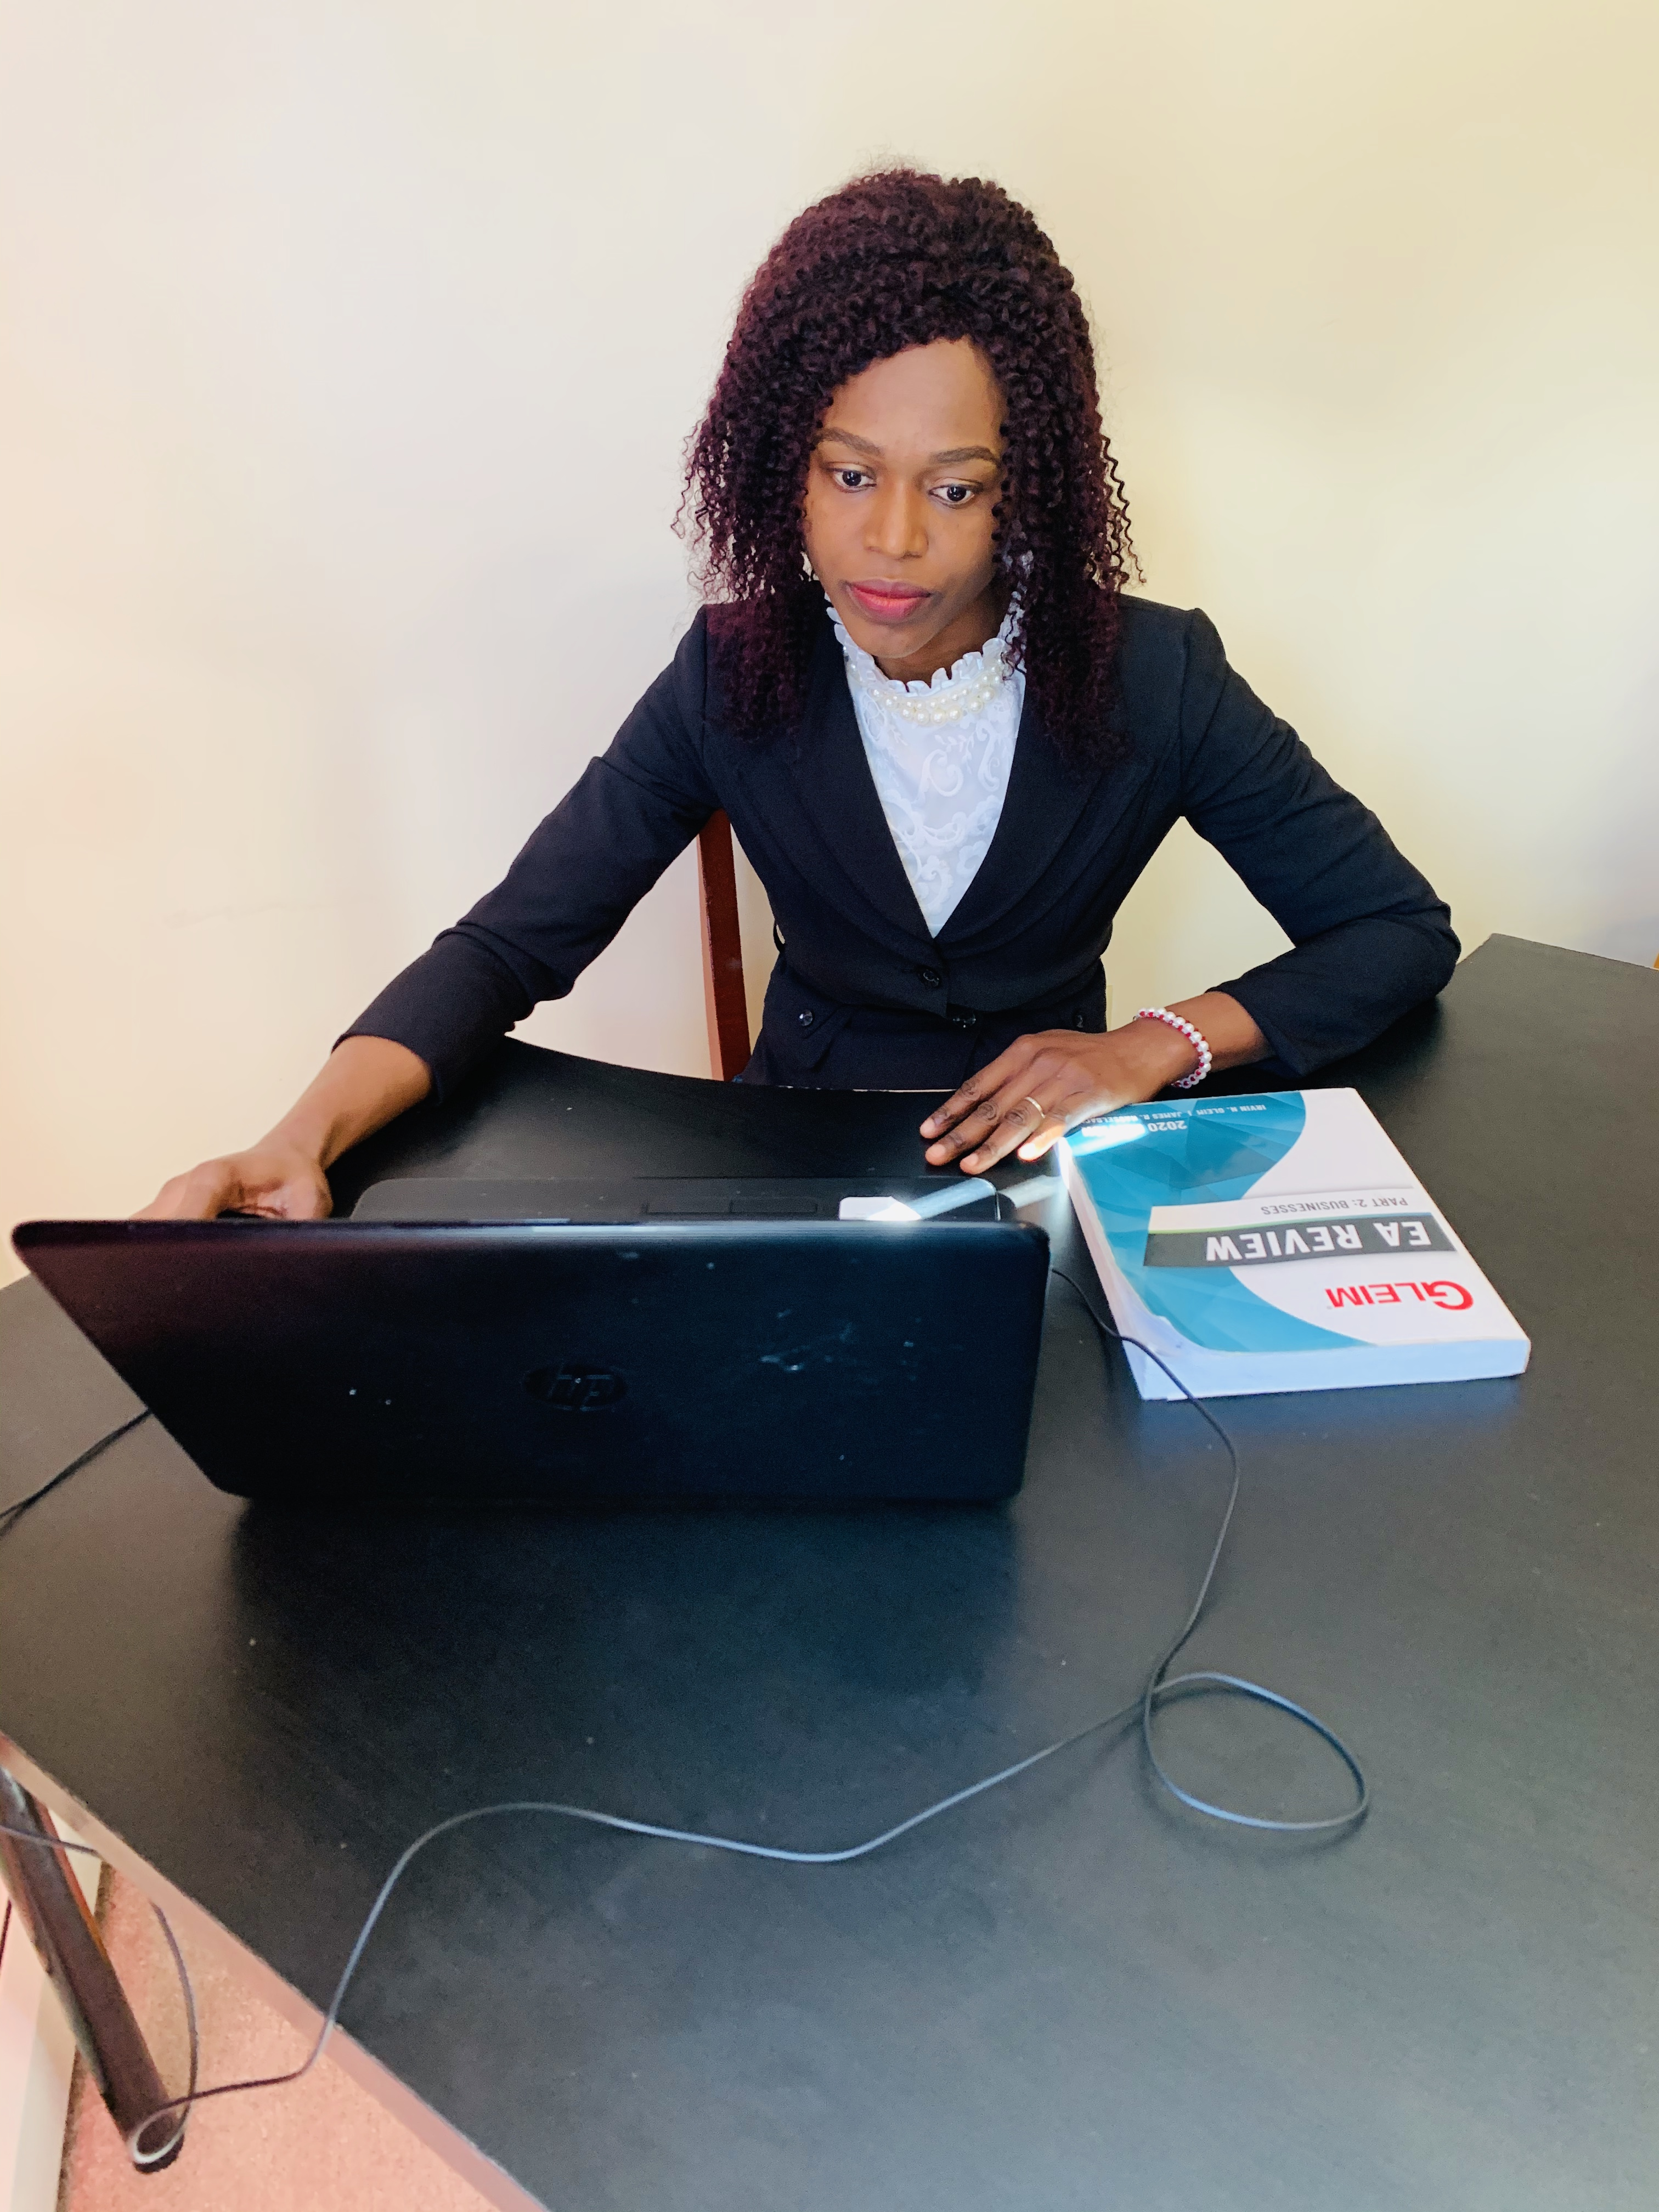 Florence Obijiofor studying for the EA exam